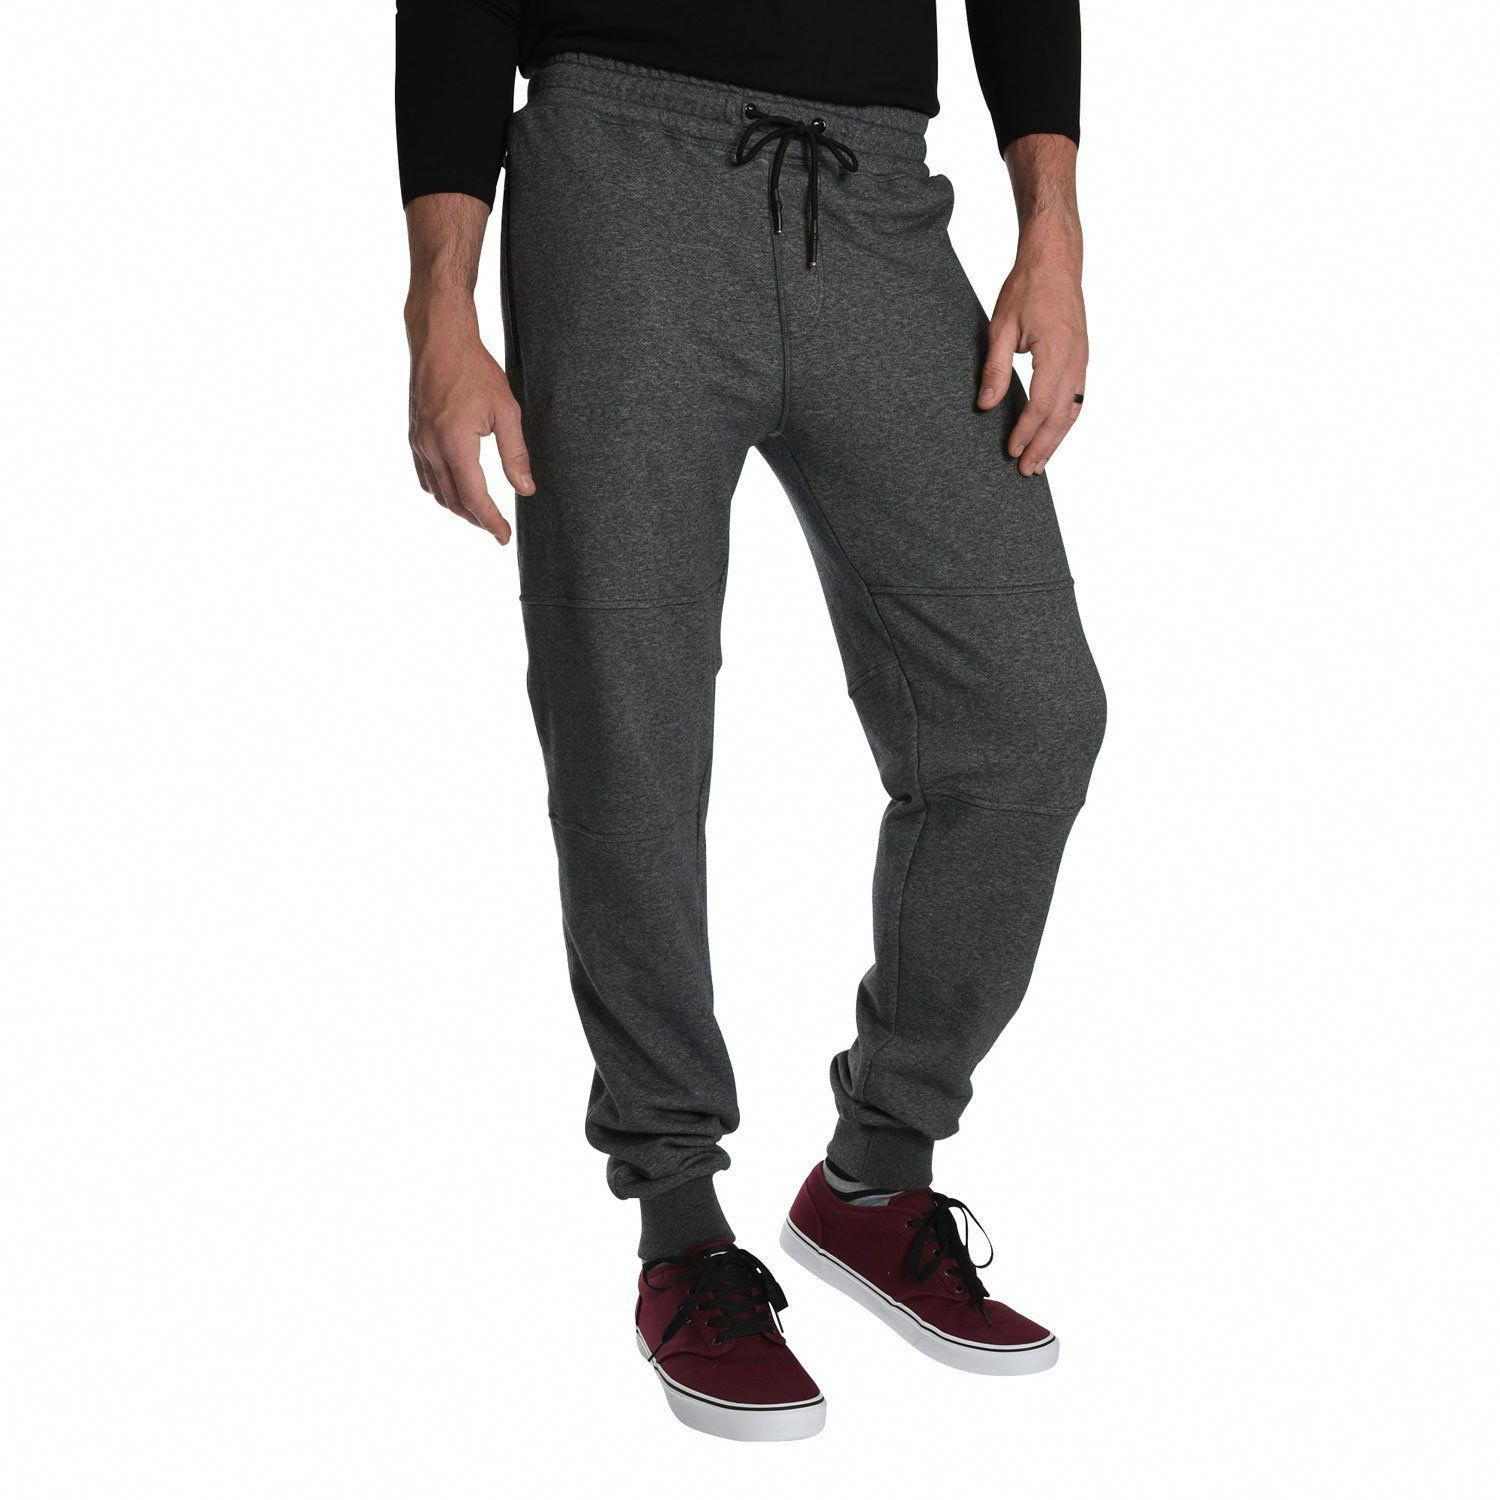 Men S Tall Jogger Sweats In Charcoal Mensfashionsummer Mens Tall Sweatpants Hoodies Men Mens Joggers